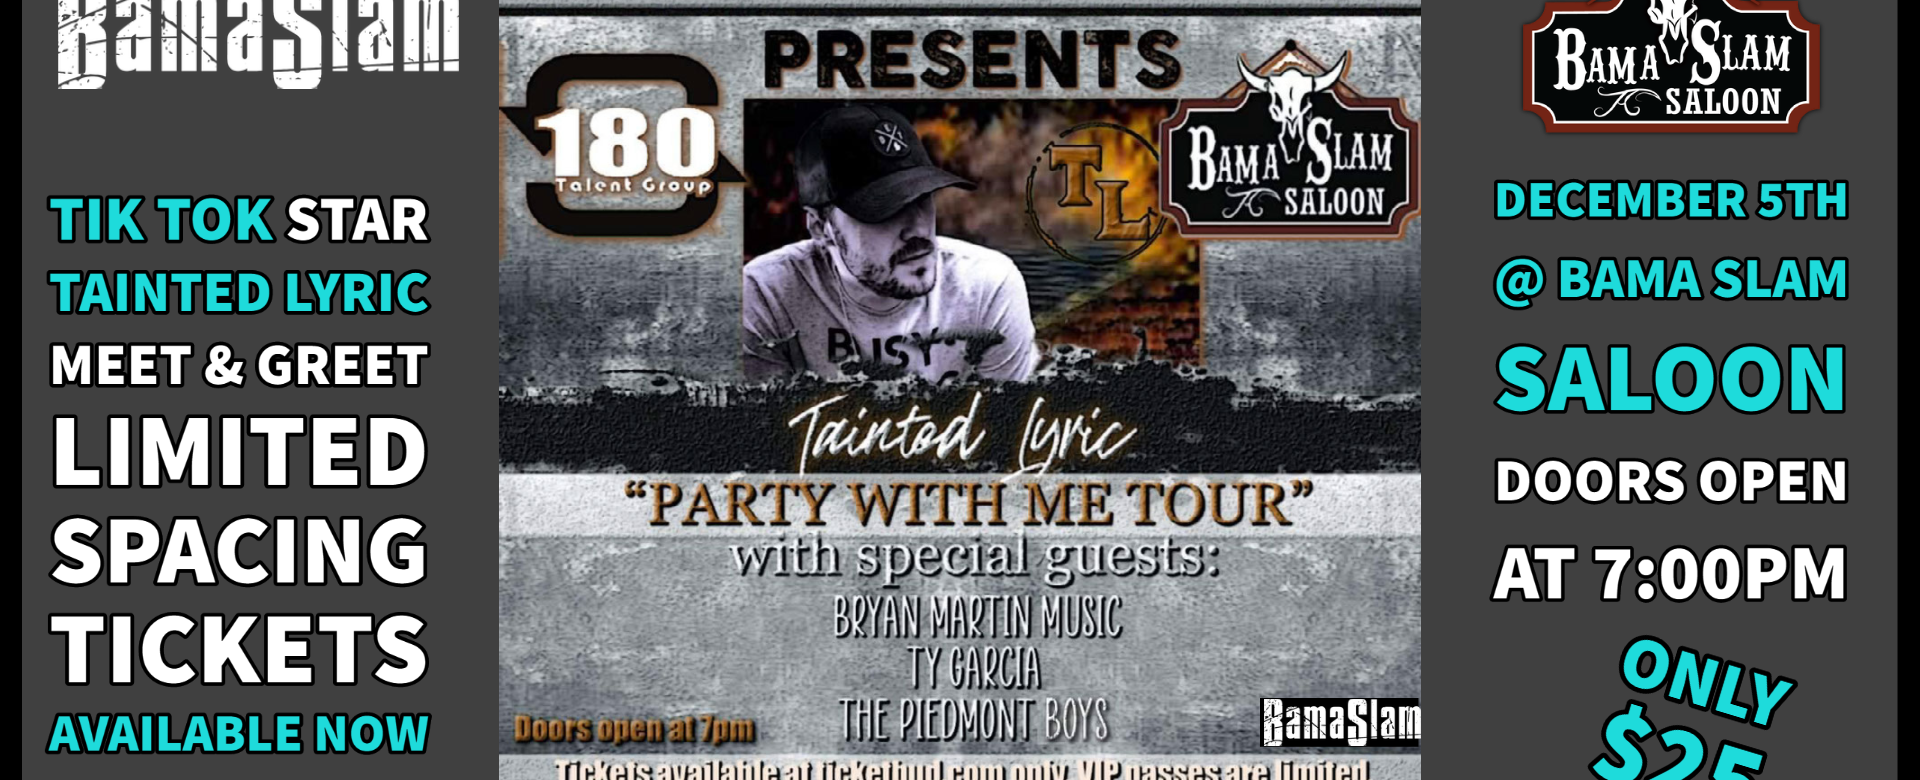 Tainted Lyrics Party with Me event @Bama Slam